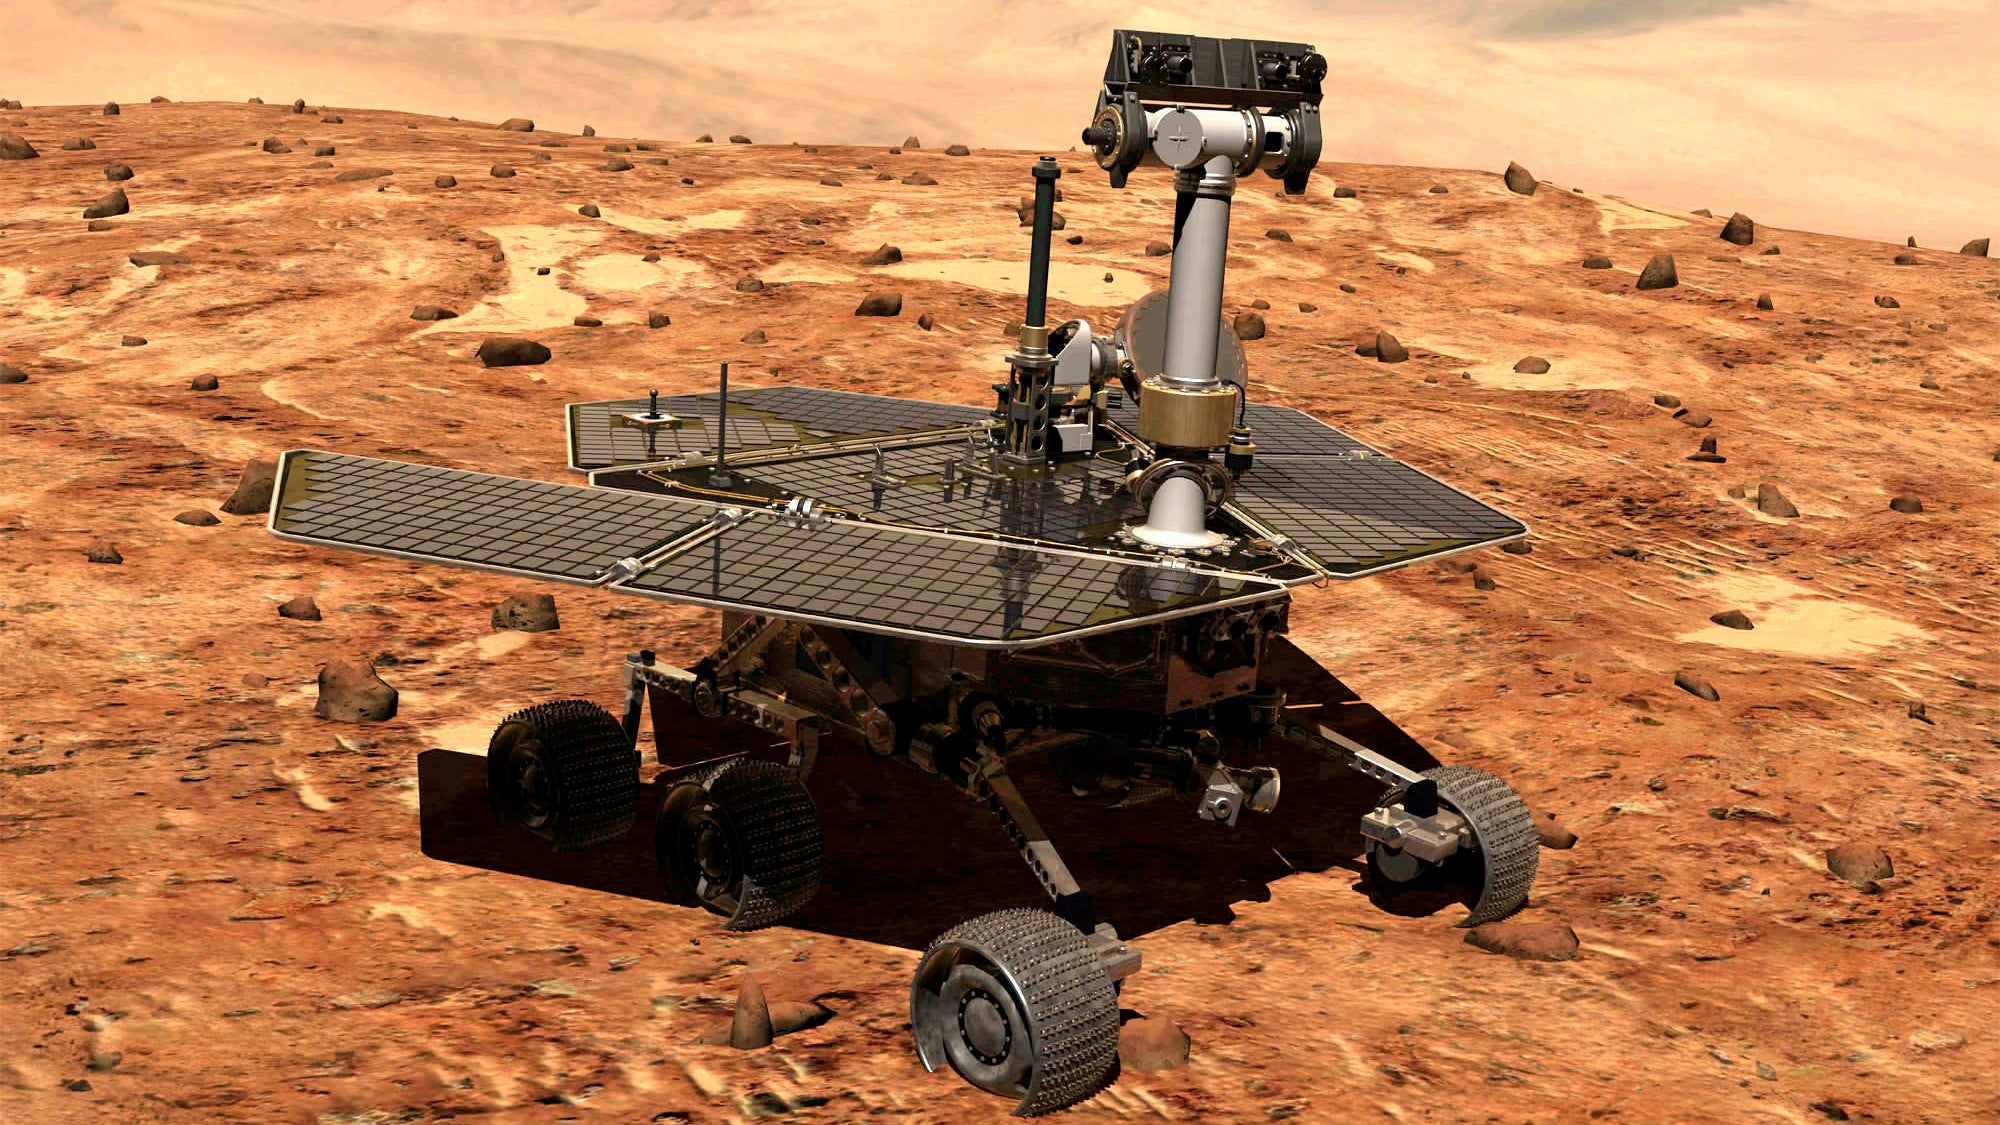 NASA Opportunity Rover Just Experienced Its 5000th Martian Dawn